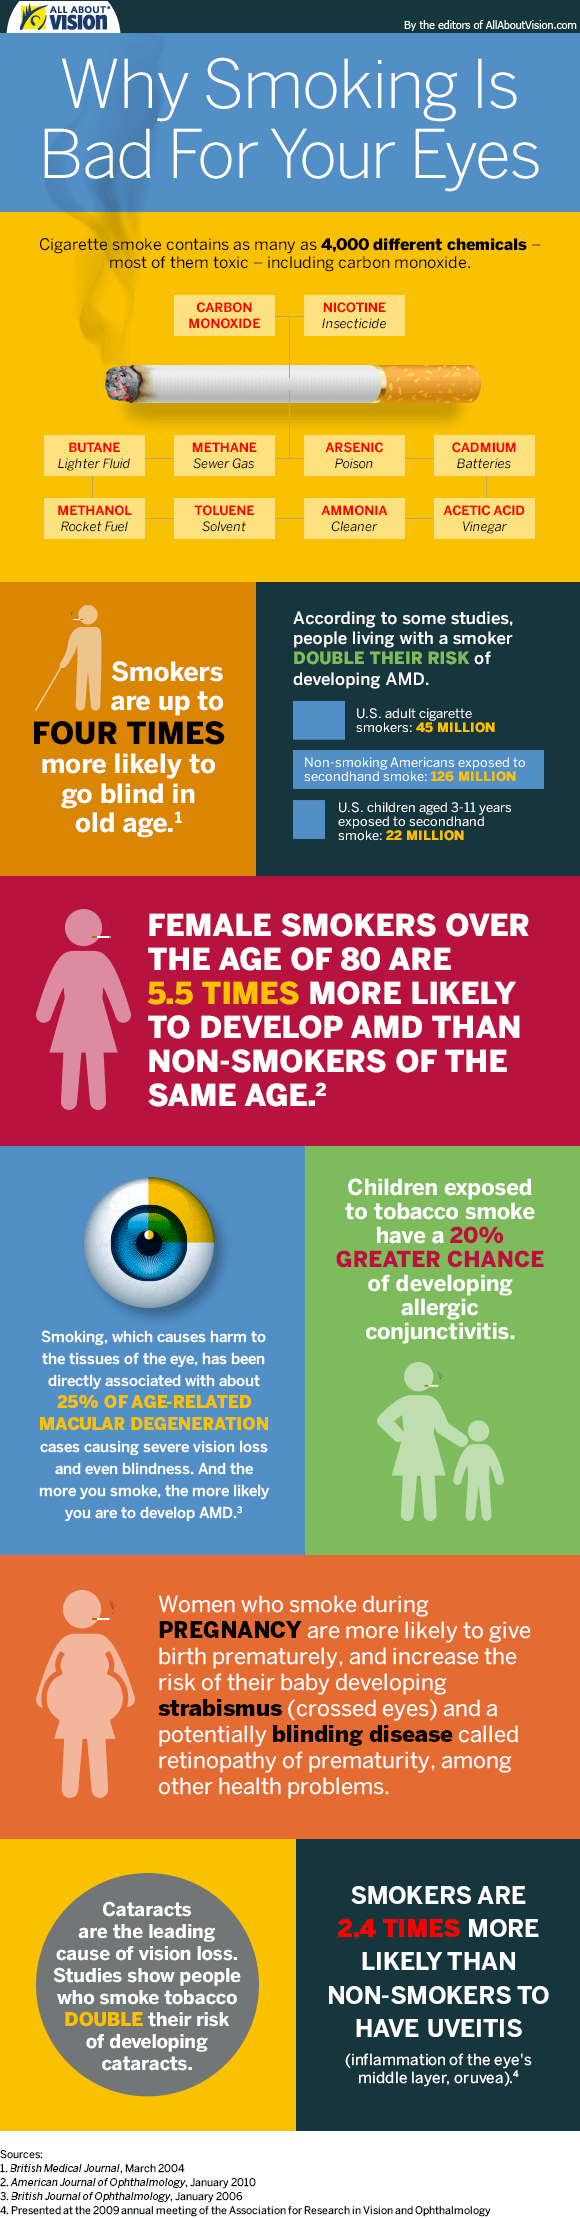 smoking-infographic-580x2218